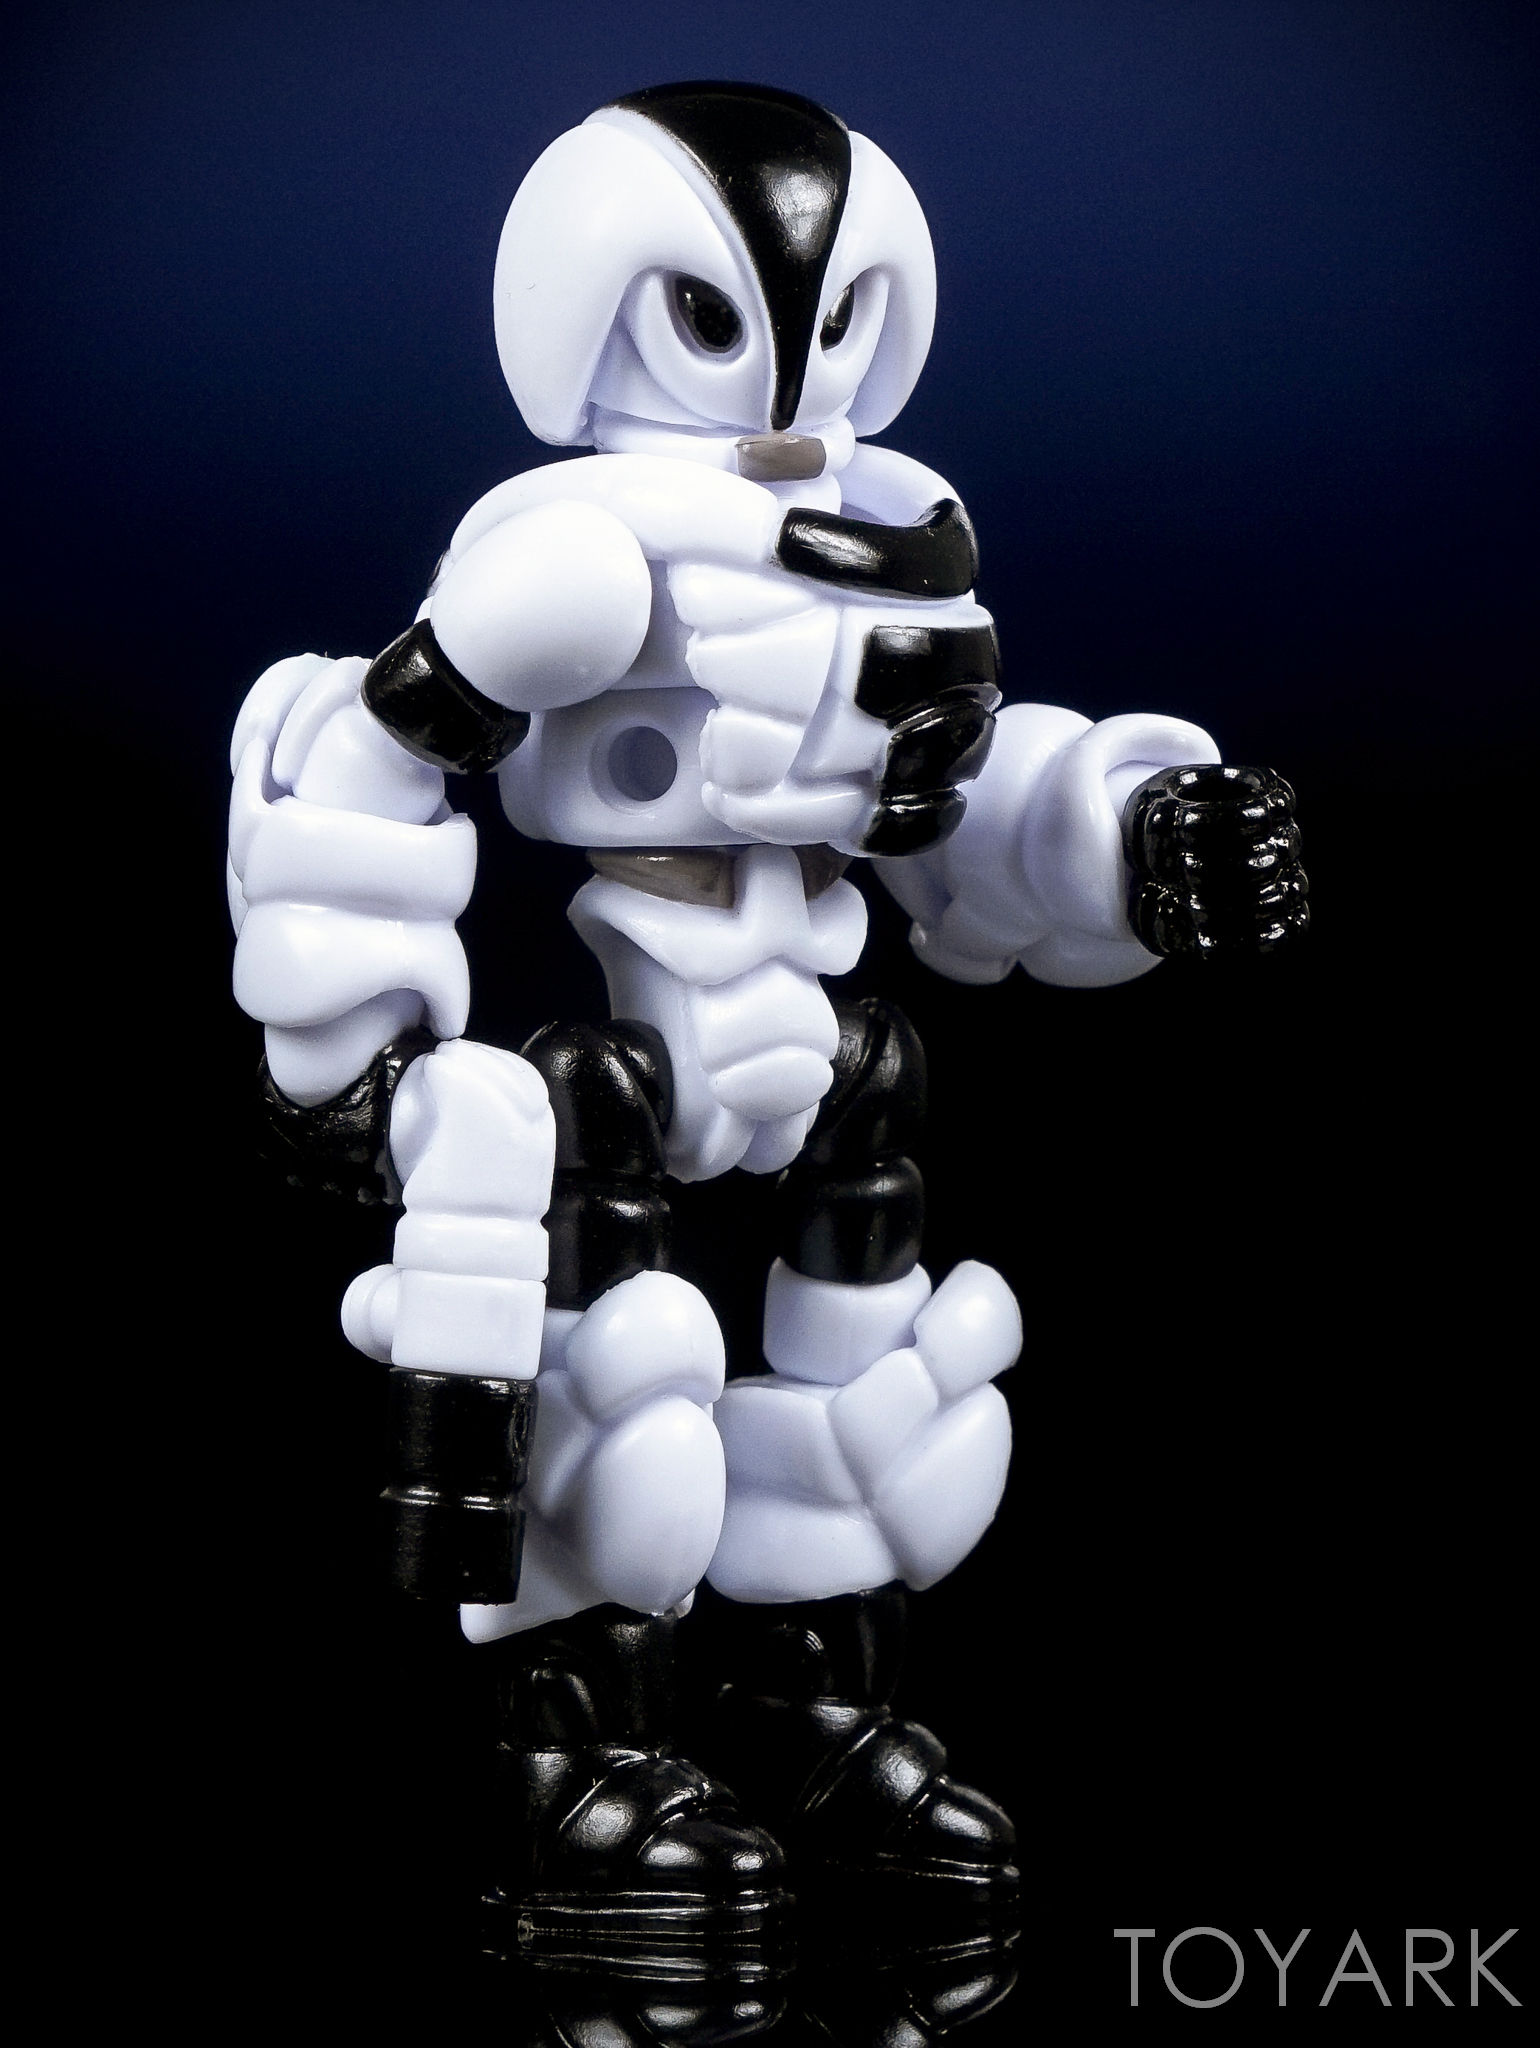 http://news.toyark.com/wp-content/uploads/sites/4/2016/10/Toyfinity-Roboforce-and-Zeroids-043.jpg